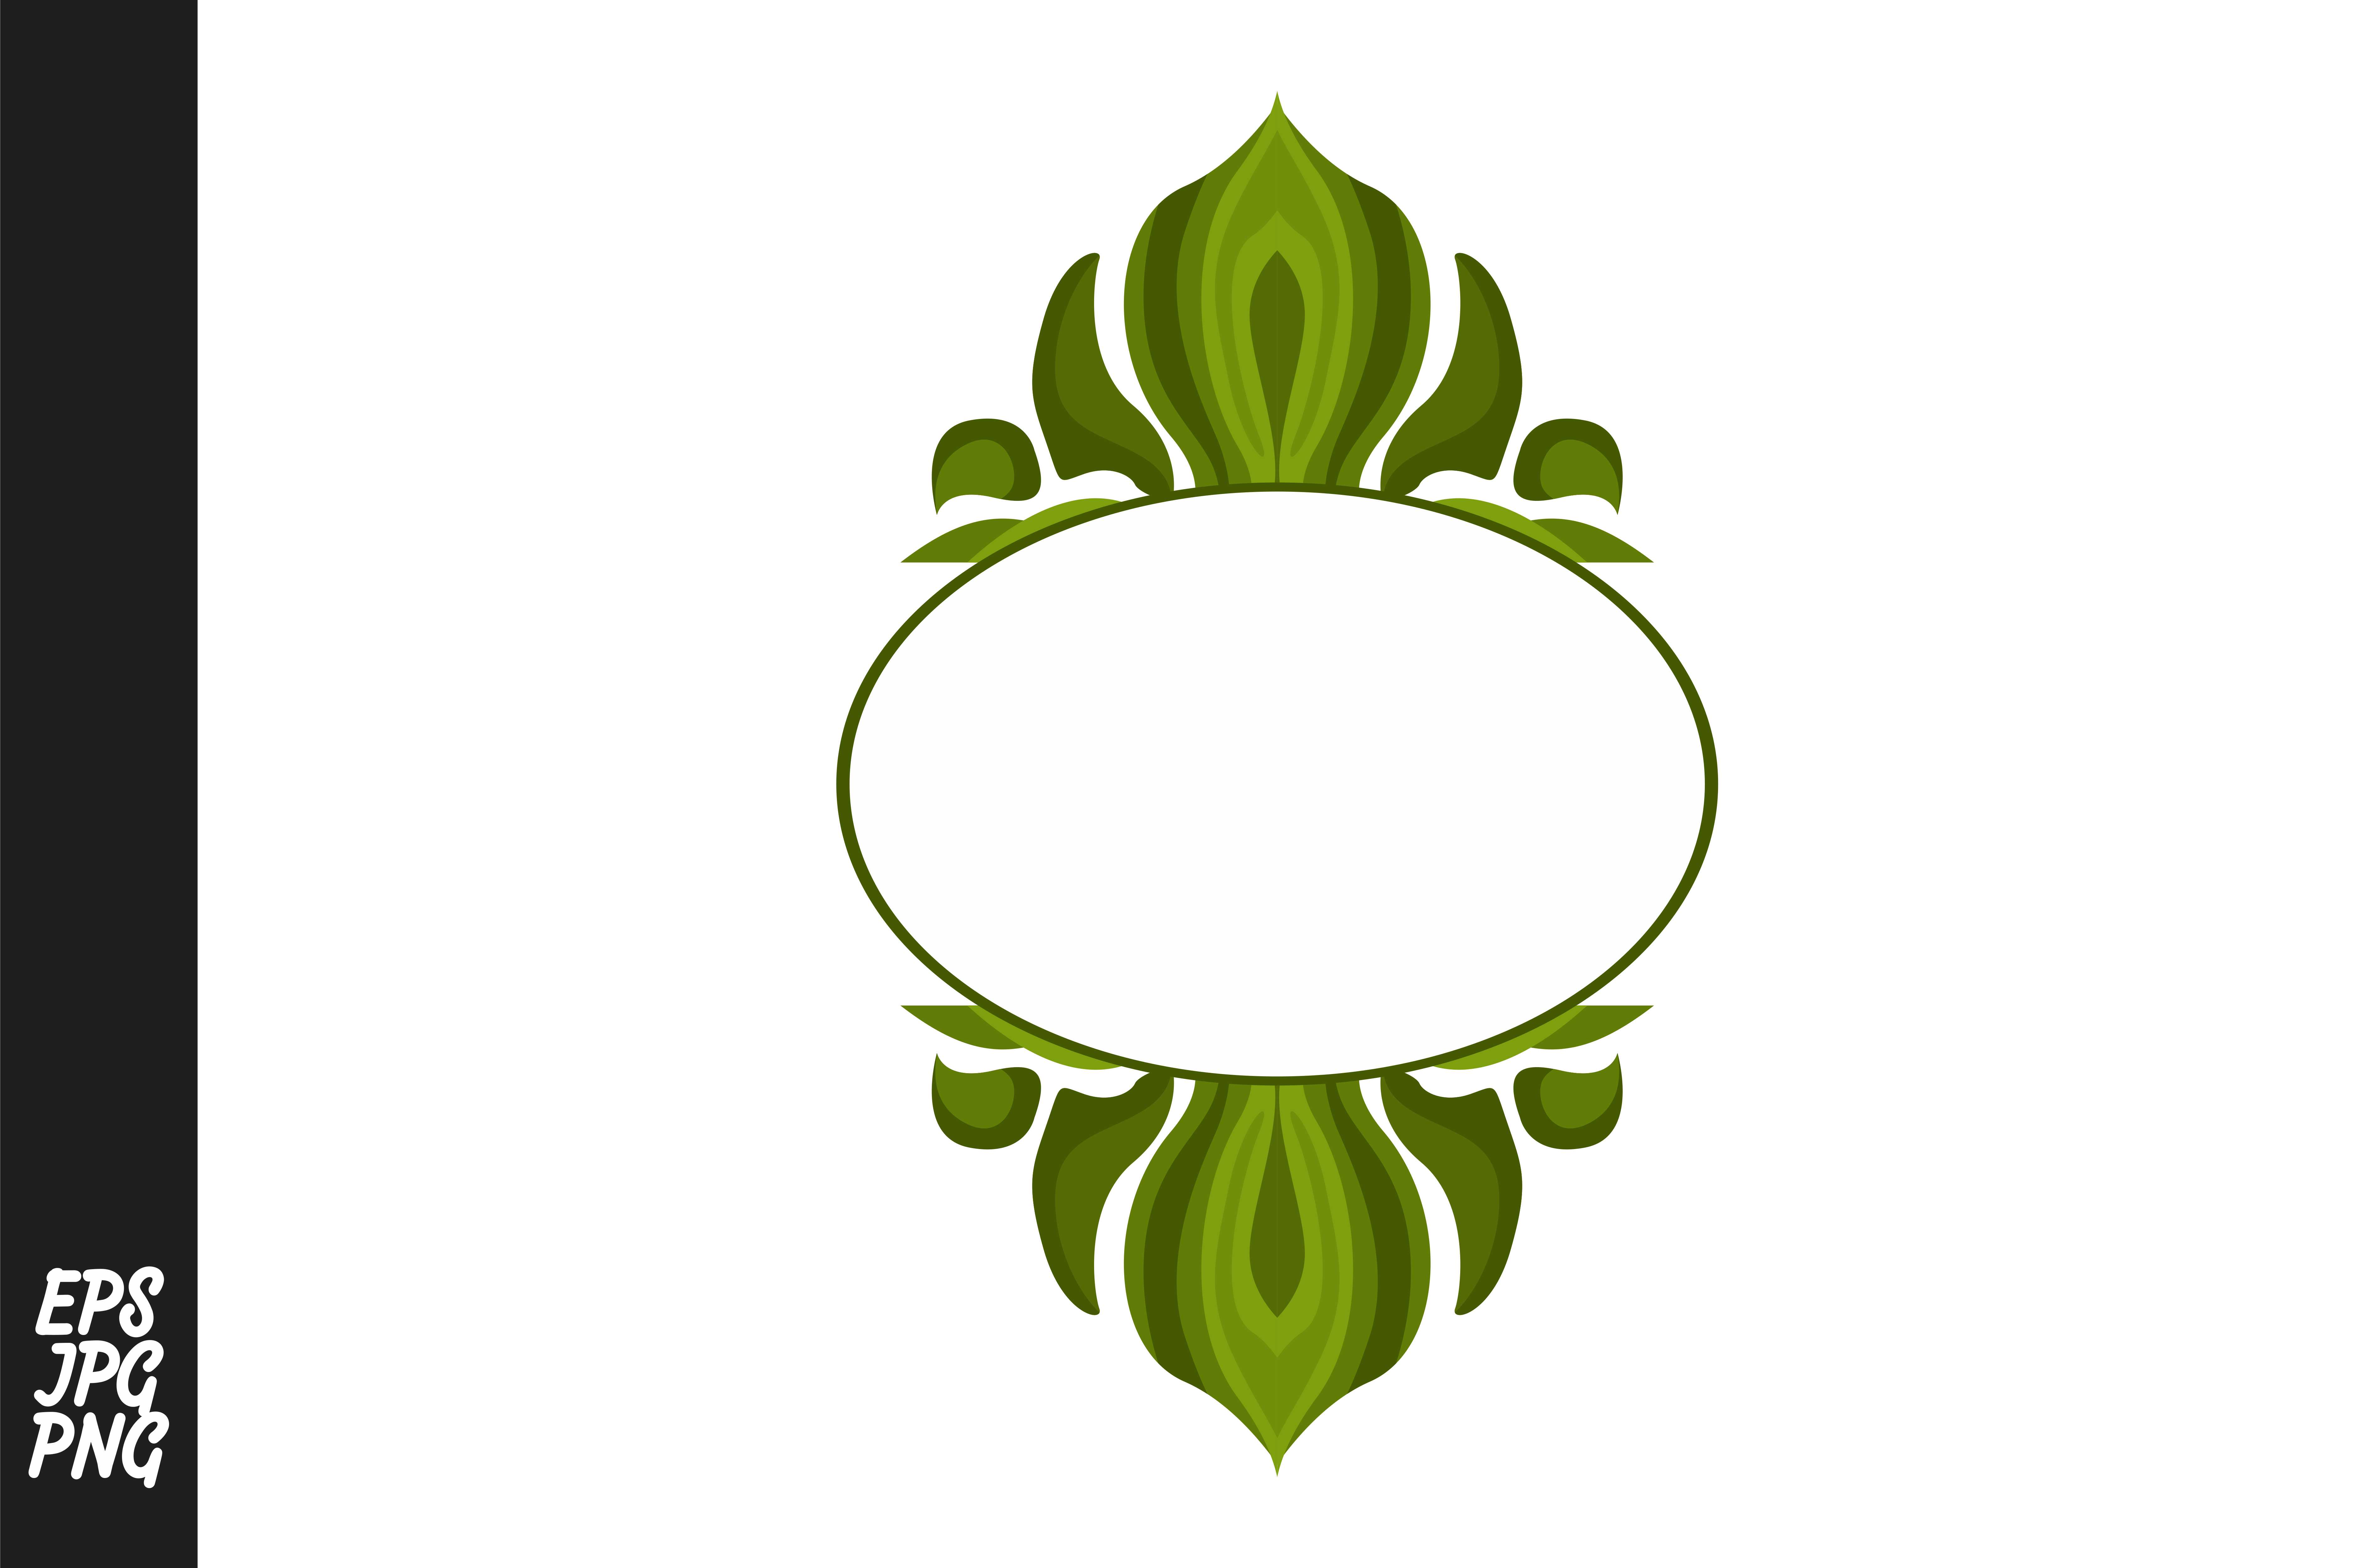 Download Free Green Ornament Monogram Graphic By Arief Sapta Adjie Creative for Cricut Explore, Silhouette and other cutting machines.